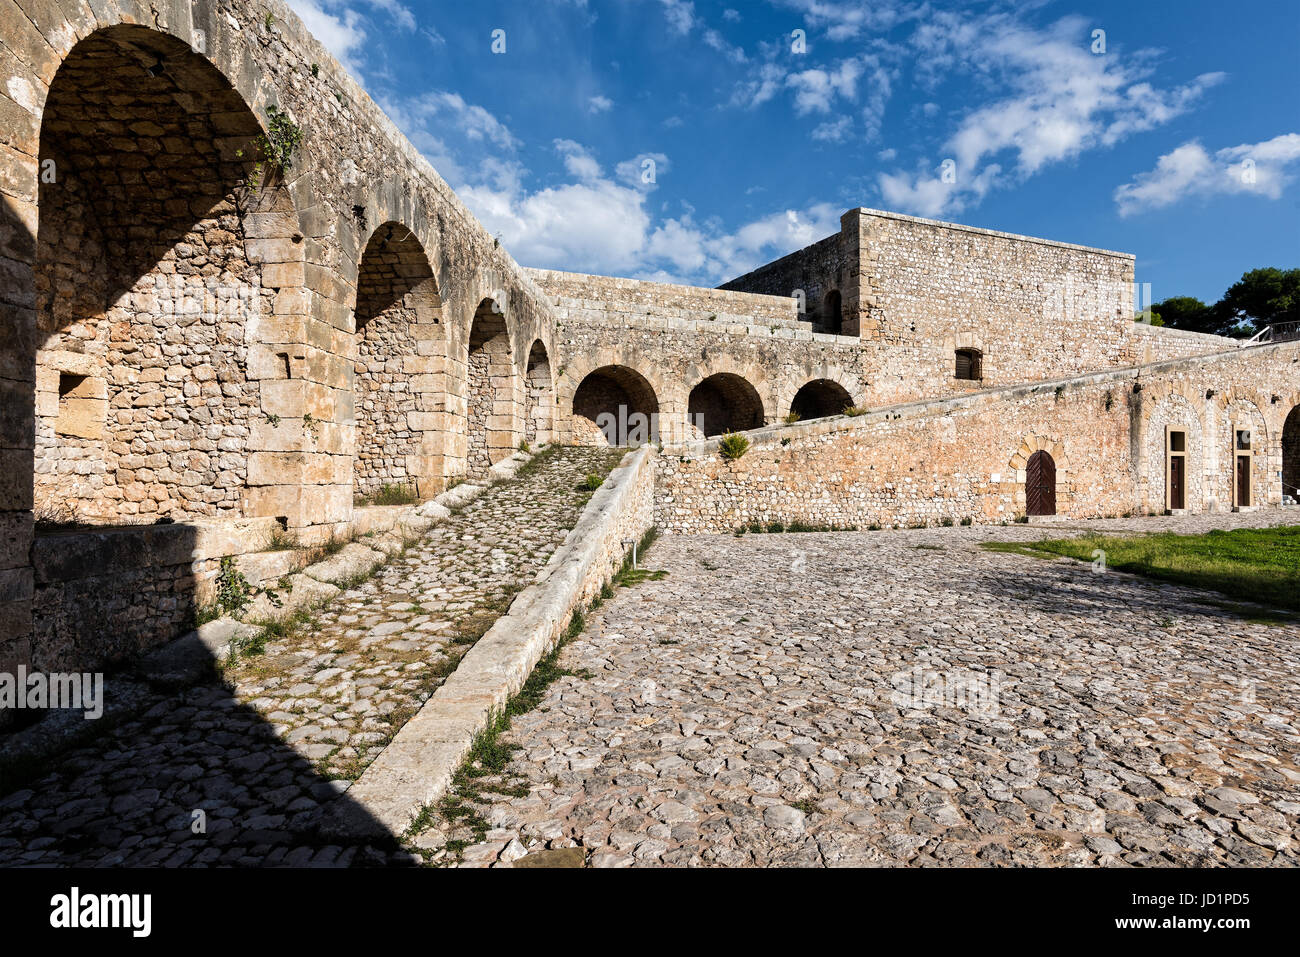 View of the interior of Niokastro castle in the city of Pylos in Peloponnese, Greece - Stock Image